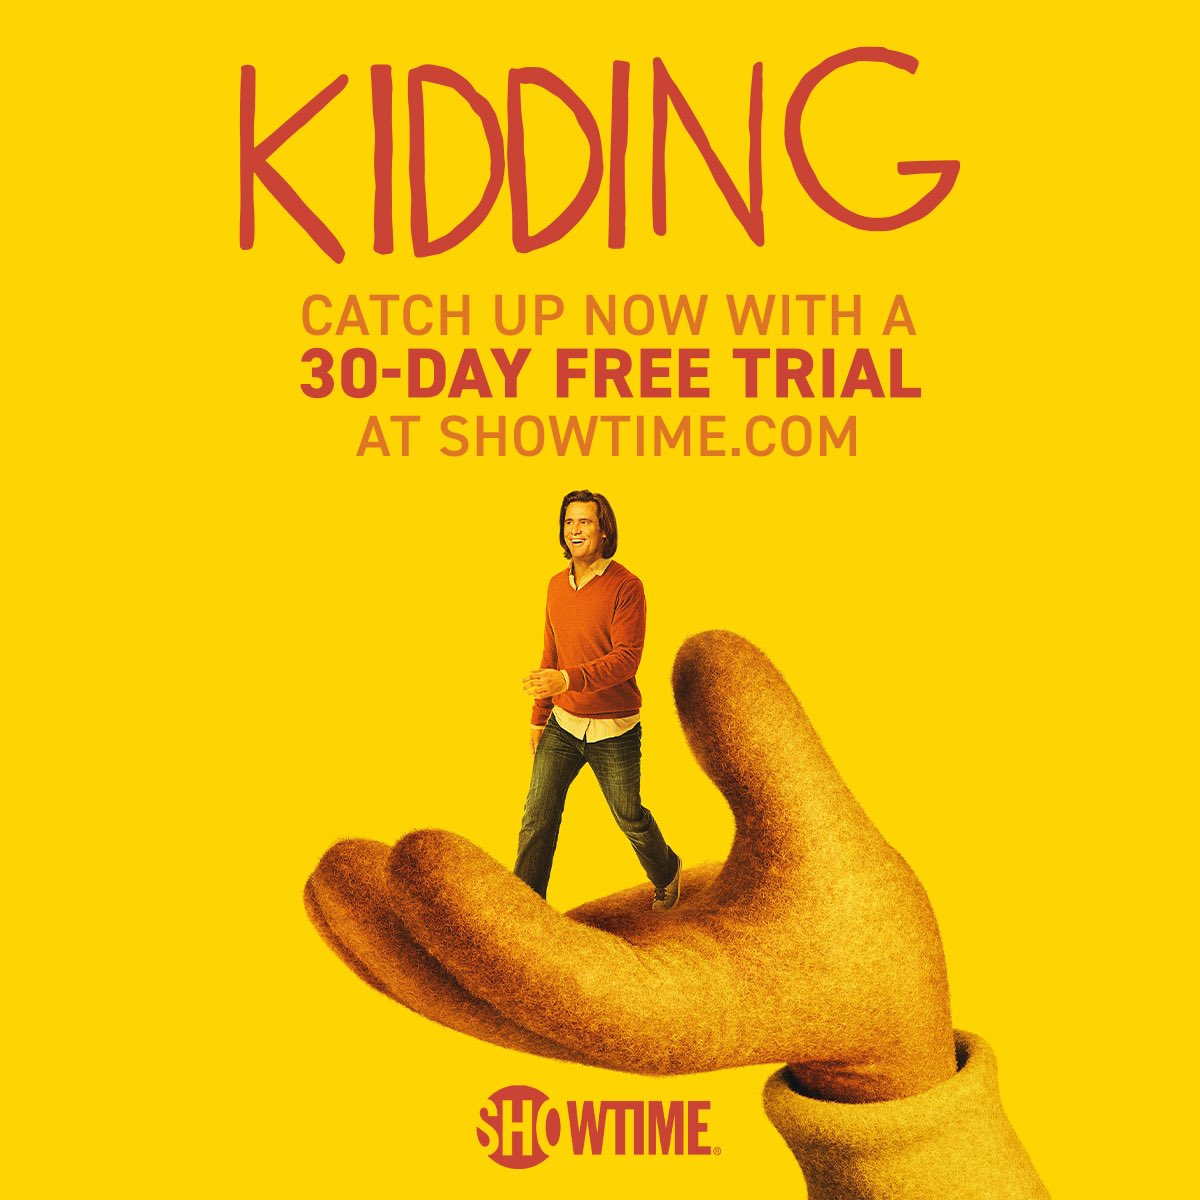 Free Showtime for your quarantine binging! Watch #Kidding Stay safe! @SHOKidding